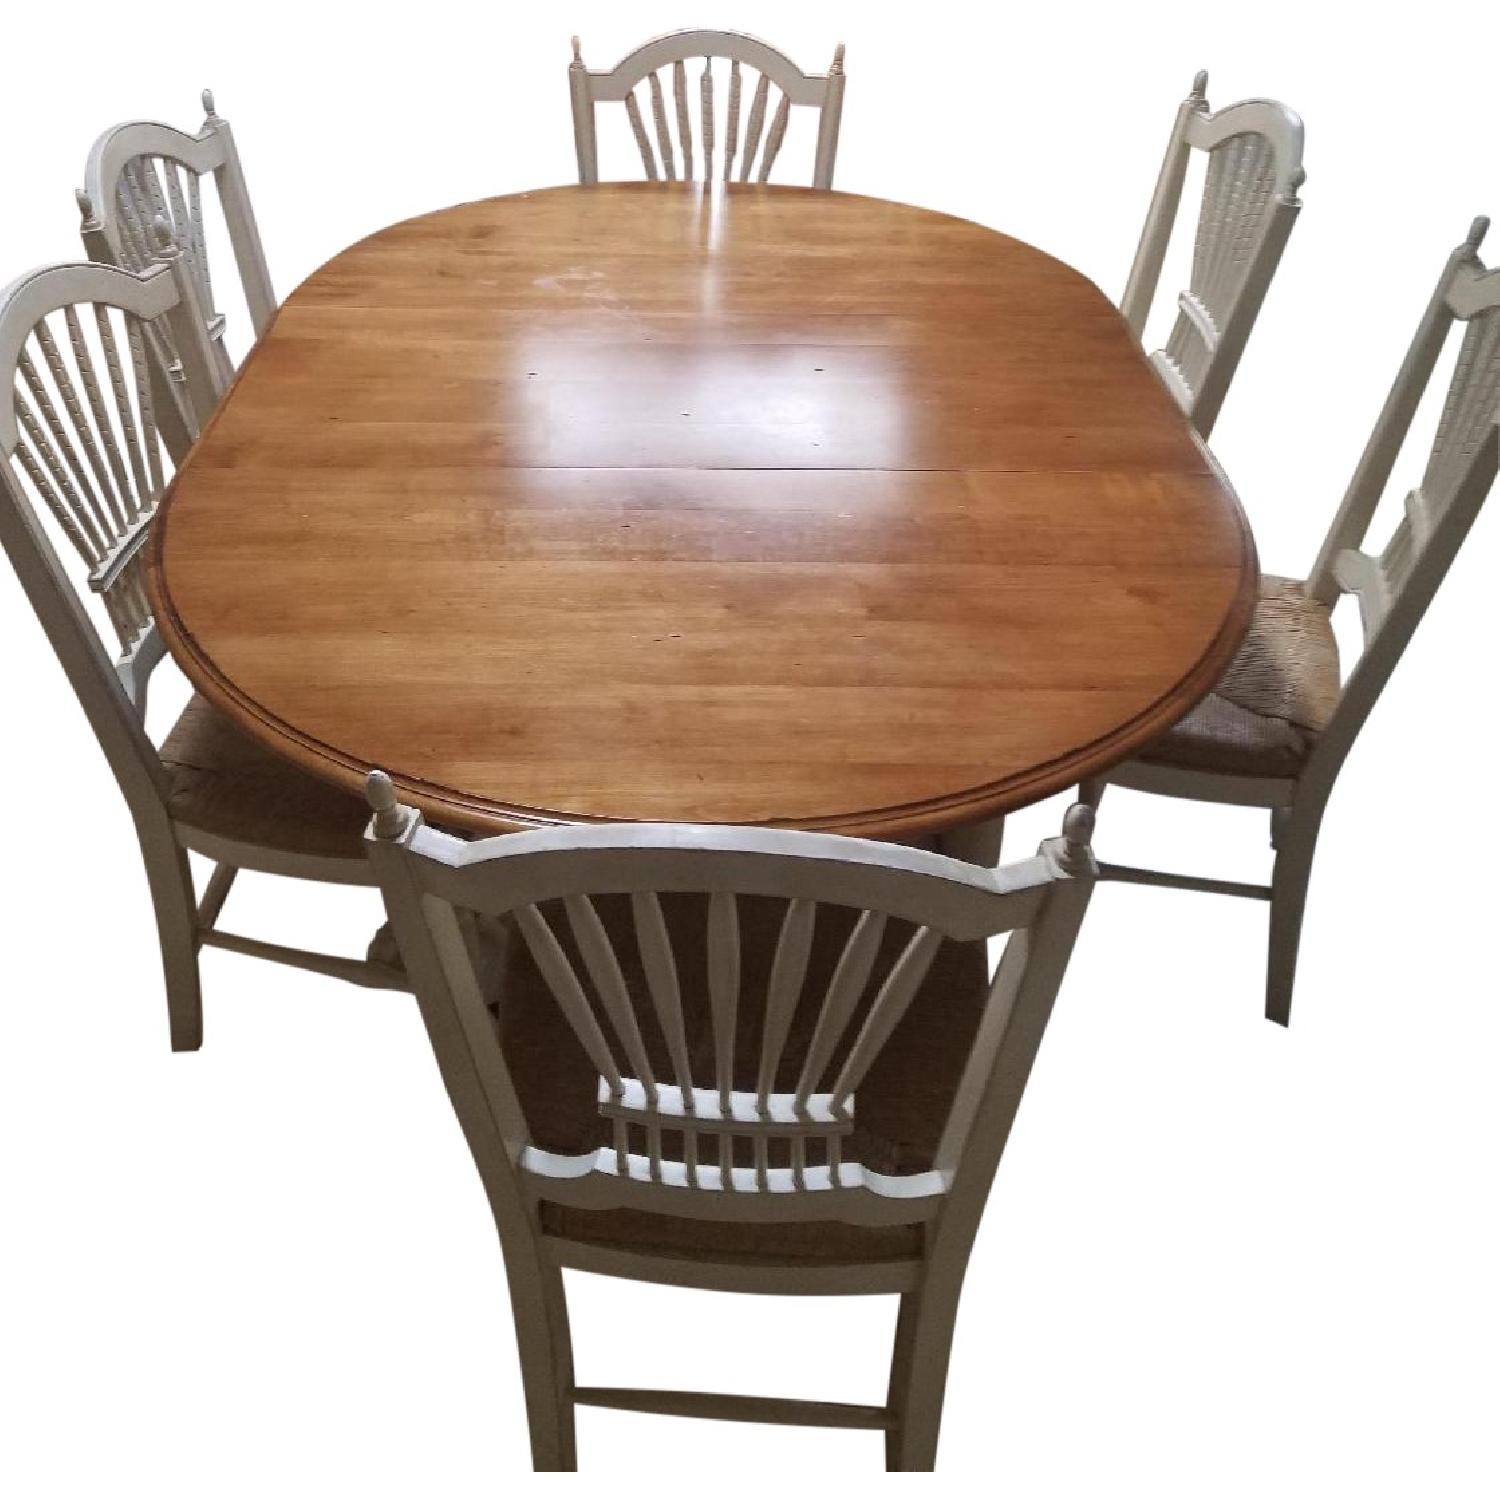 Ethan Allen Dining Room Table w 6 Chairs AptDeco